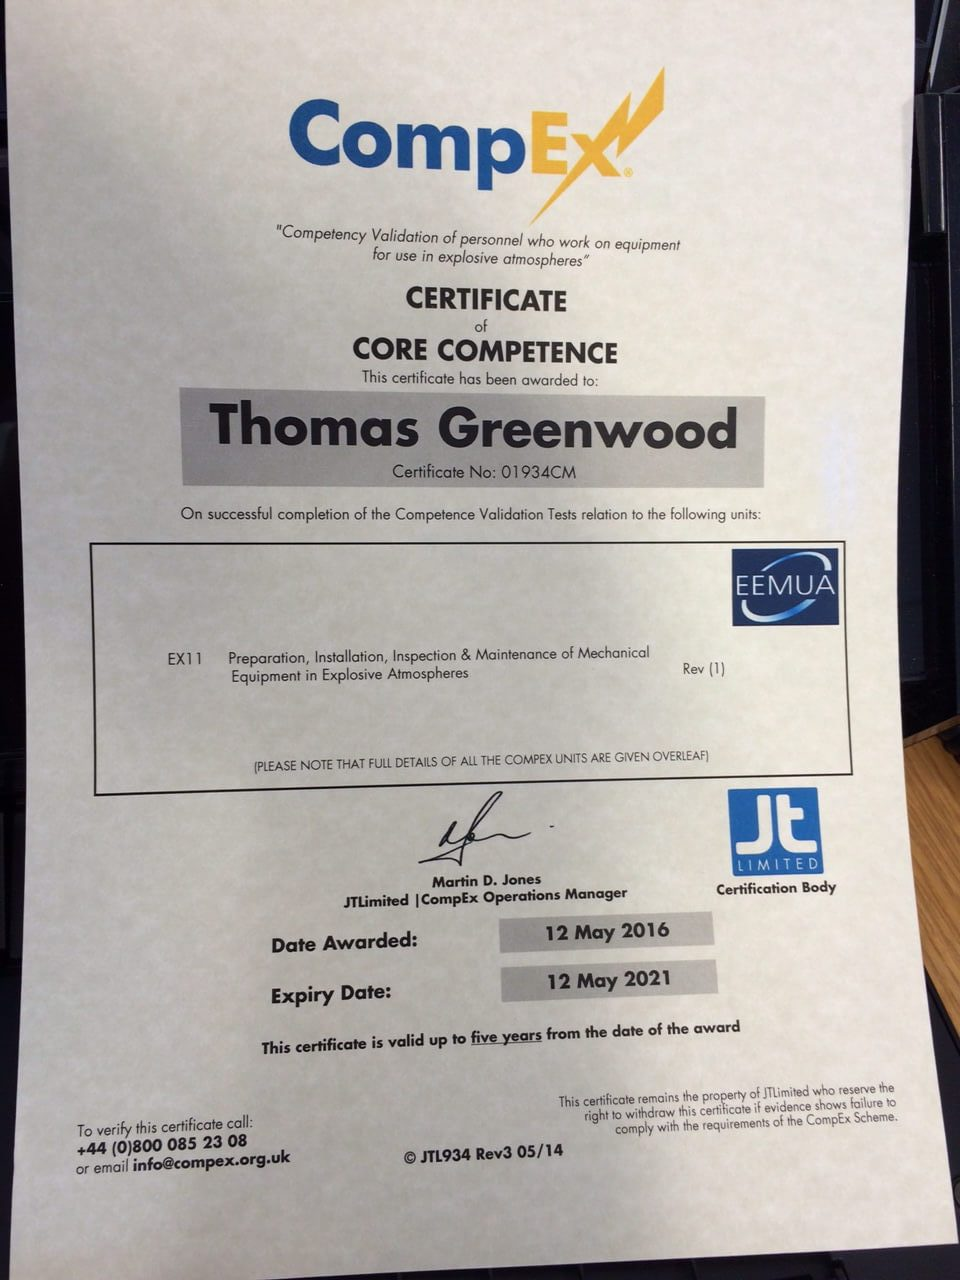 PMP Certificate of Competence - CompEx Thomas Greenwood